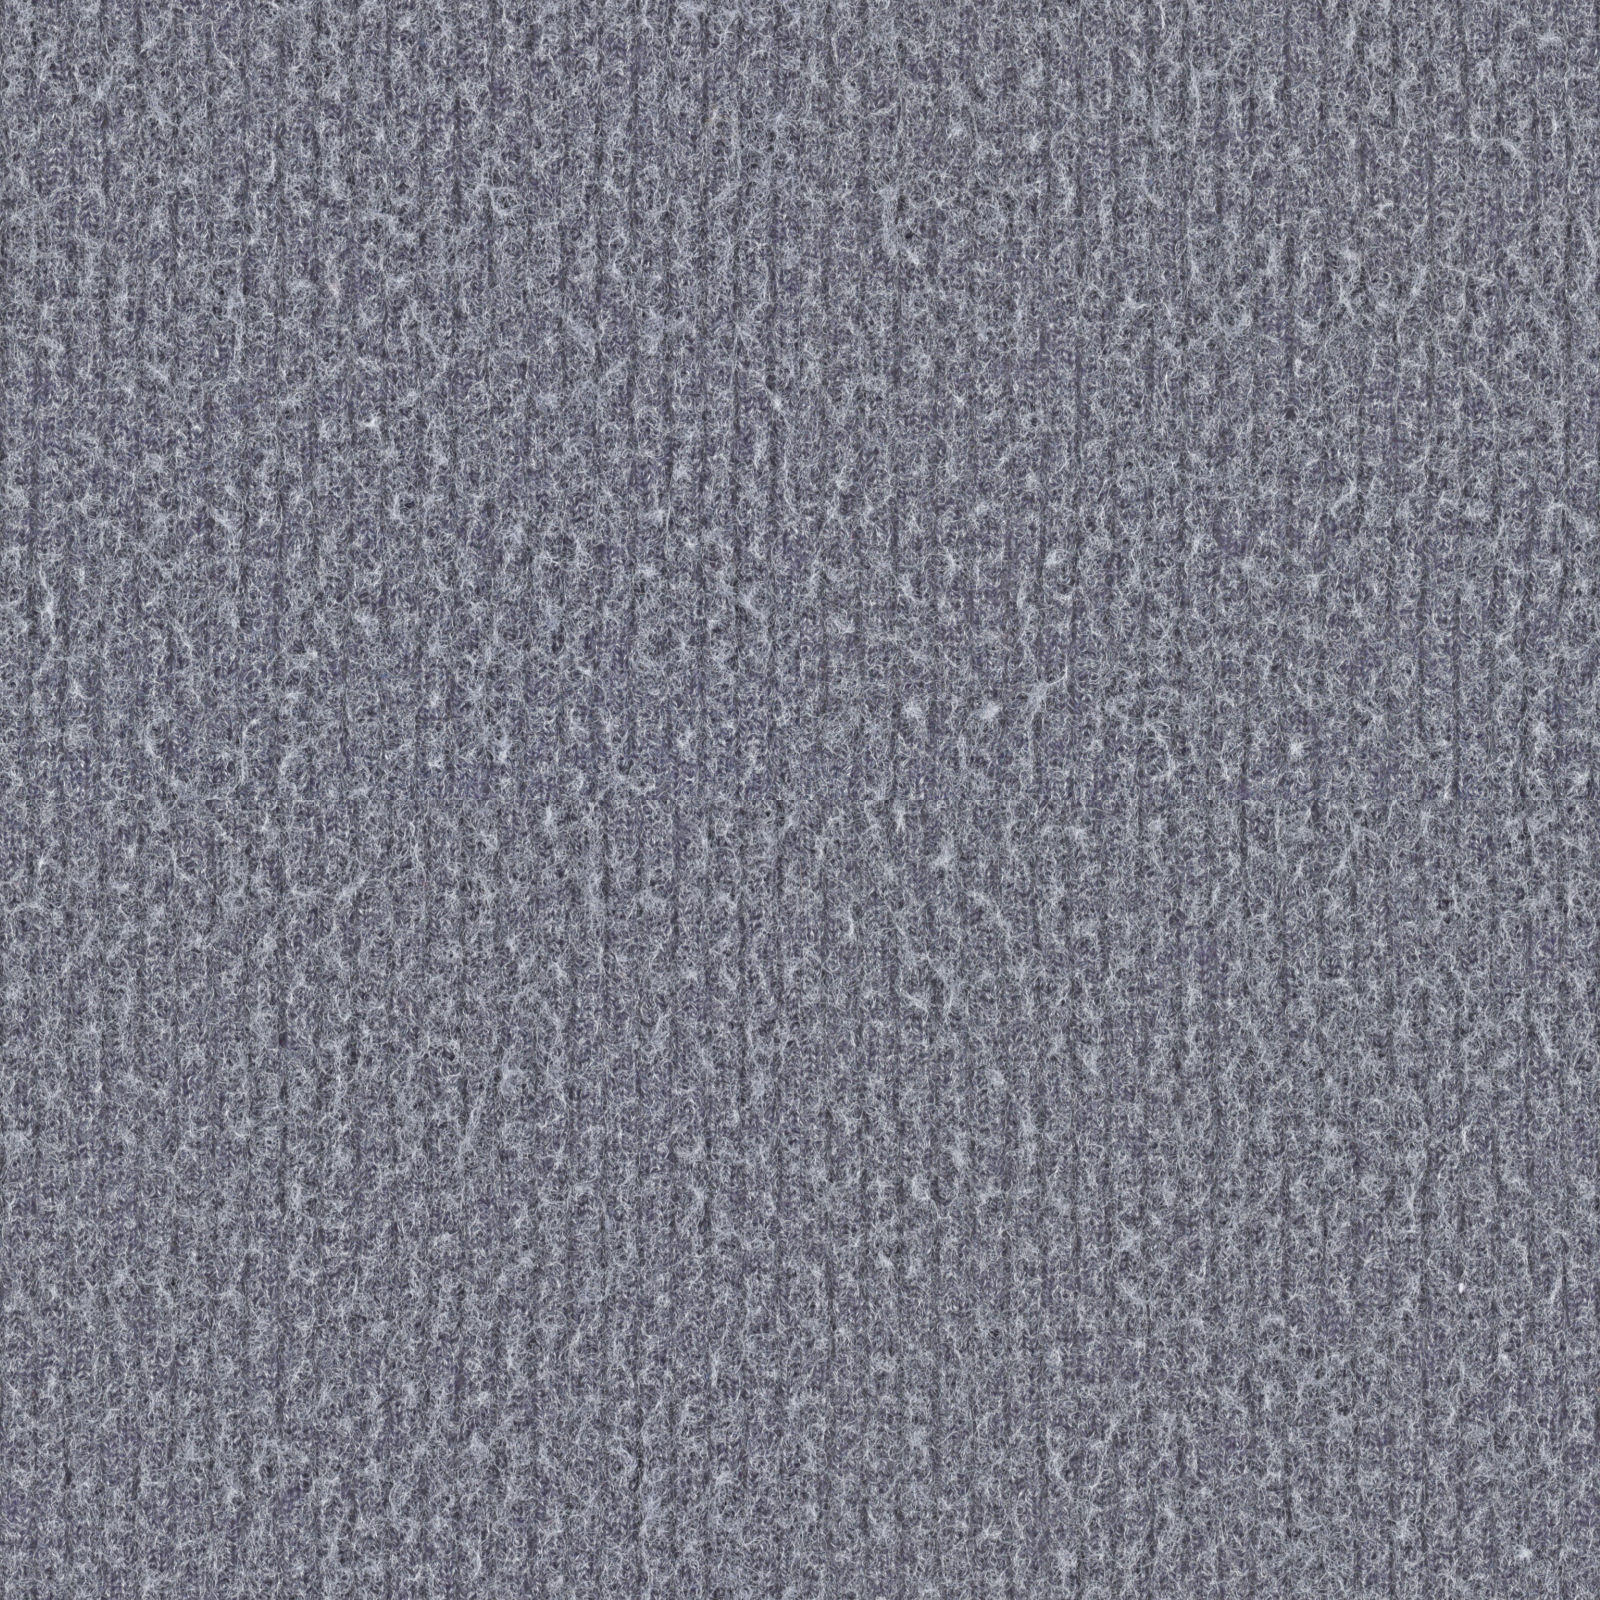 High Resolution Seamless Textures: Seamless carpet fabric blue ... for Seamless Carpet Textures  55dqh